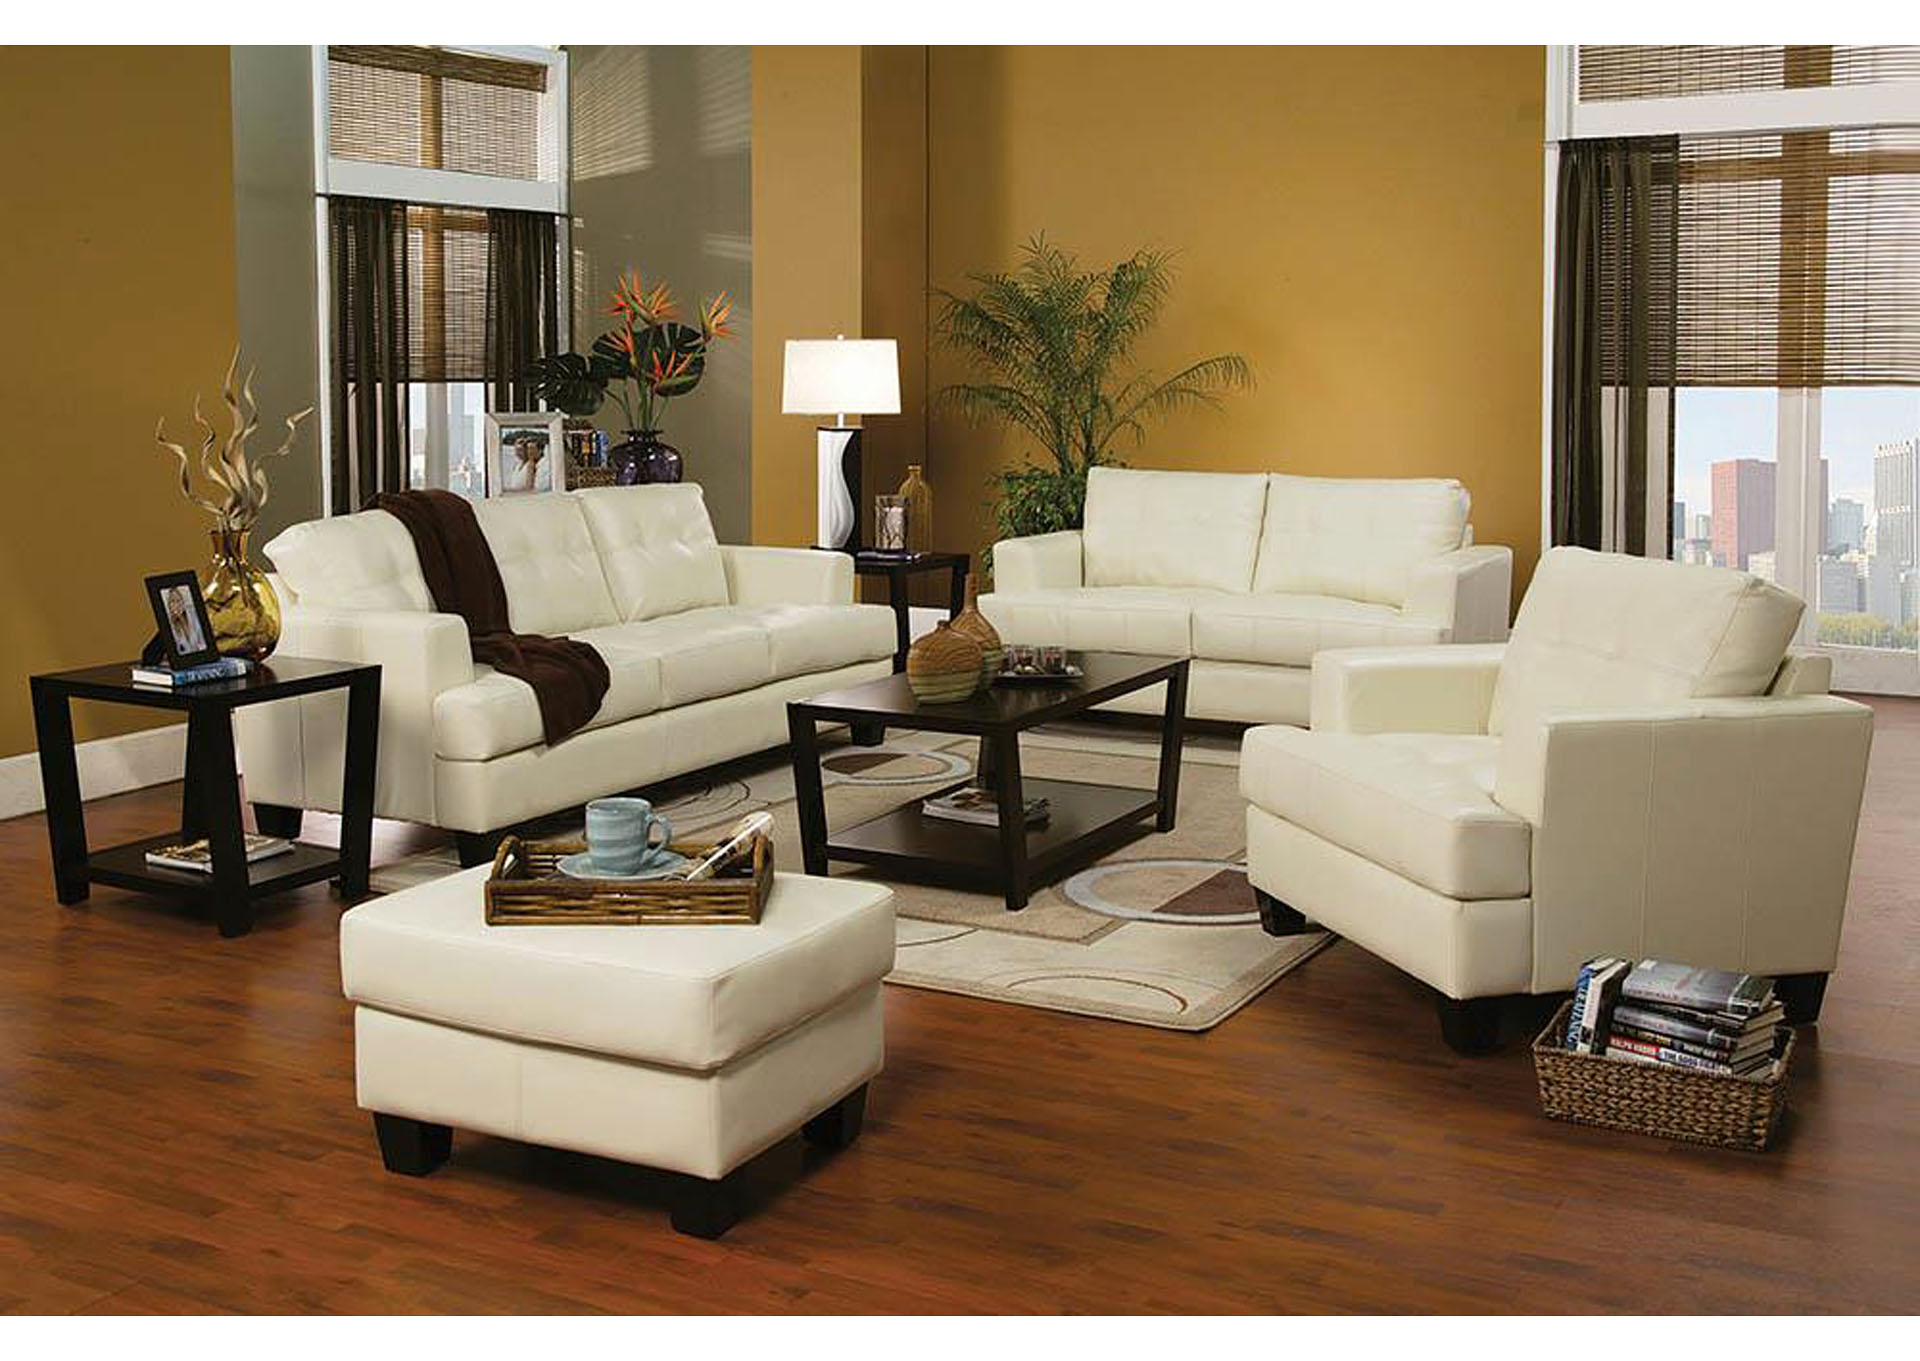 Samuel Cream Bonded Leather Chair,Coaster Furniture